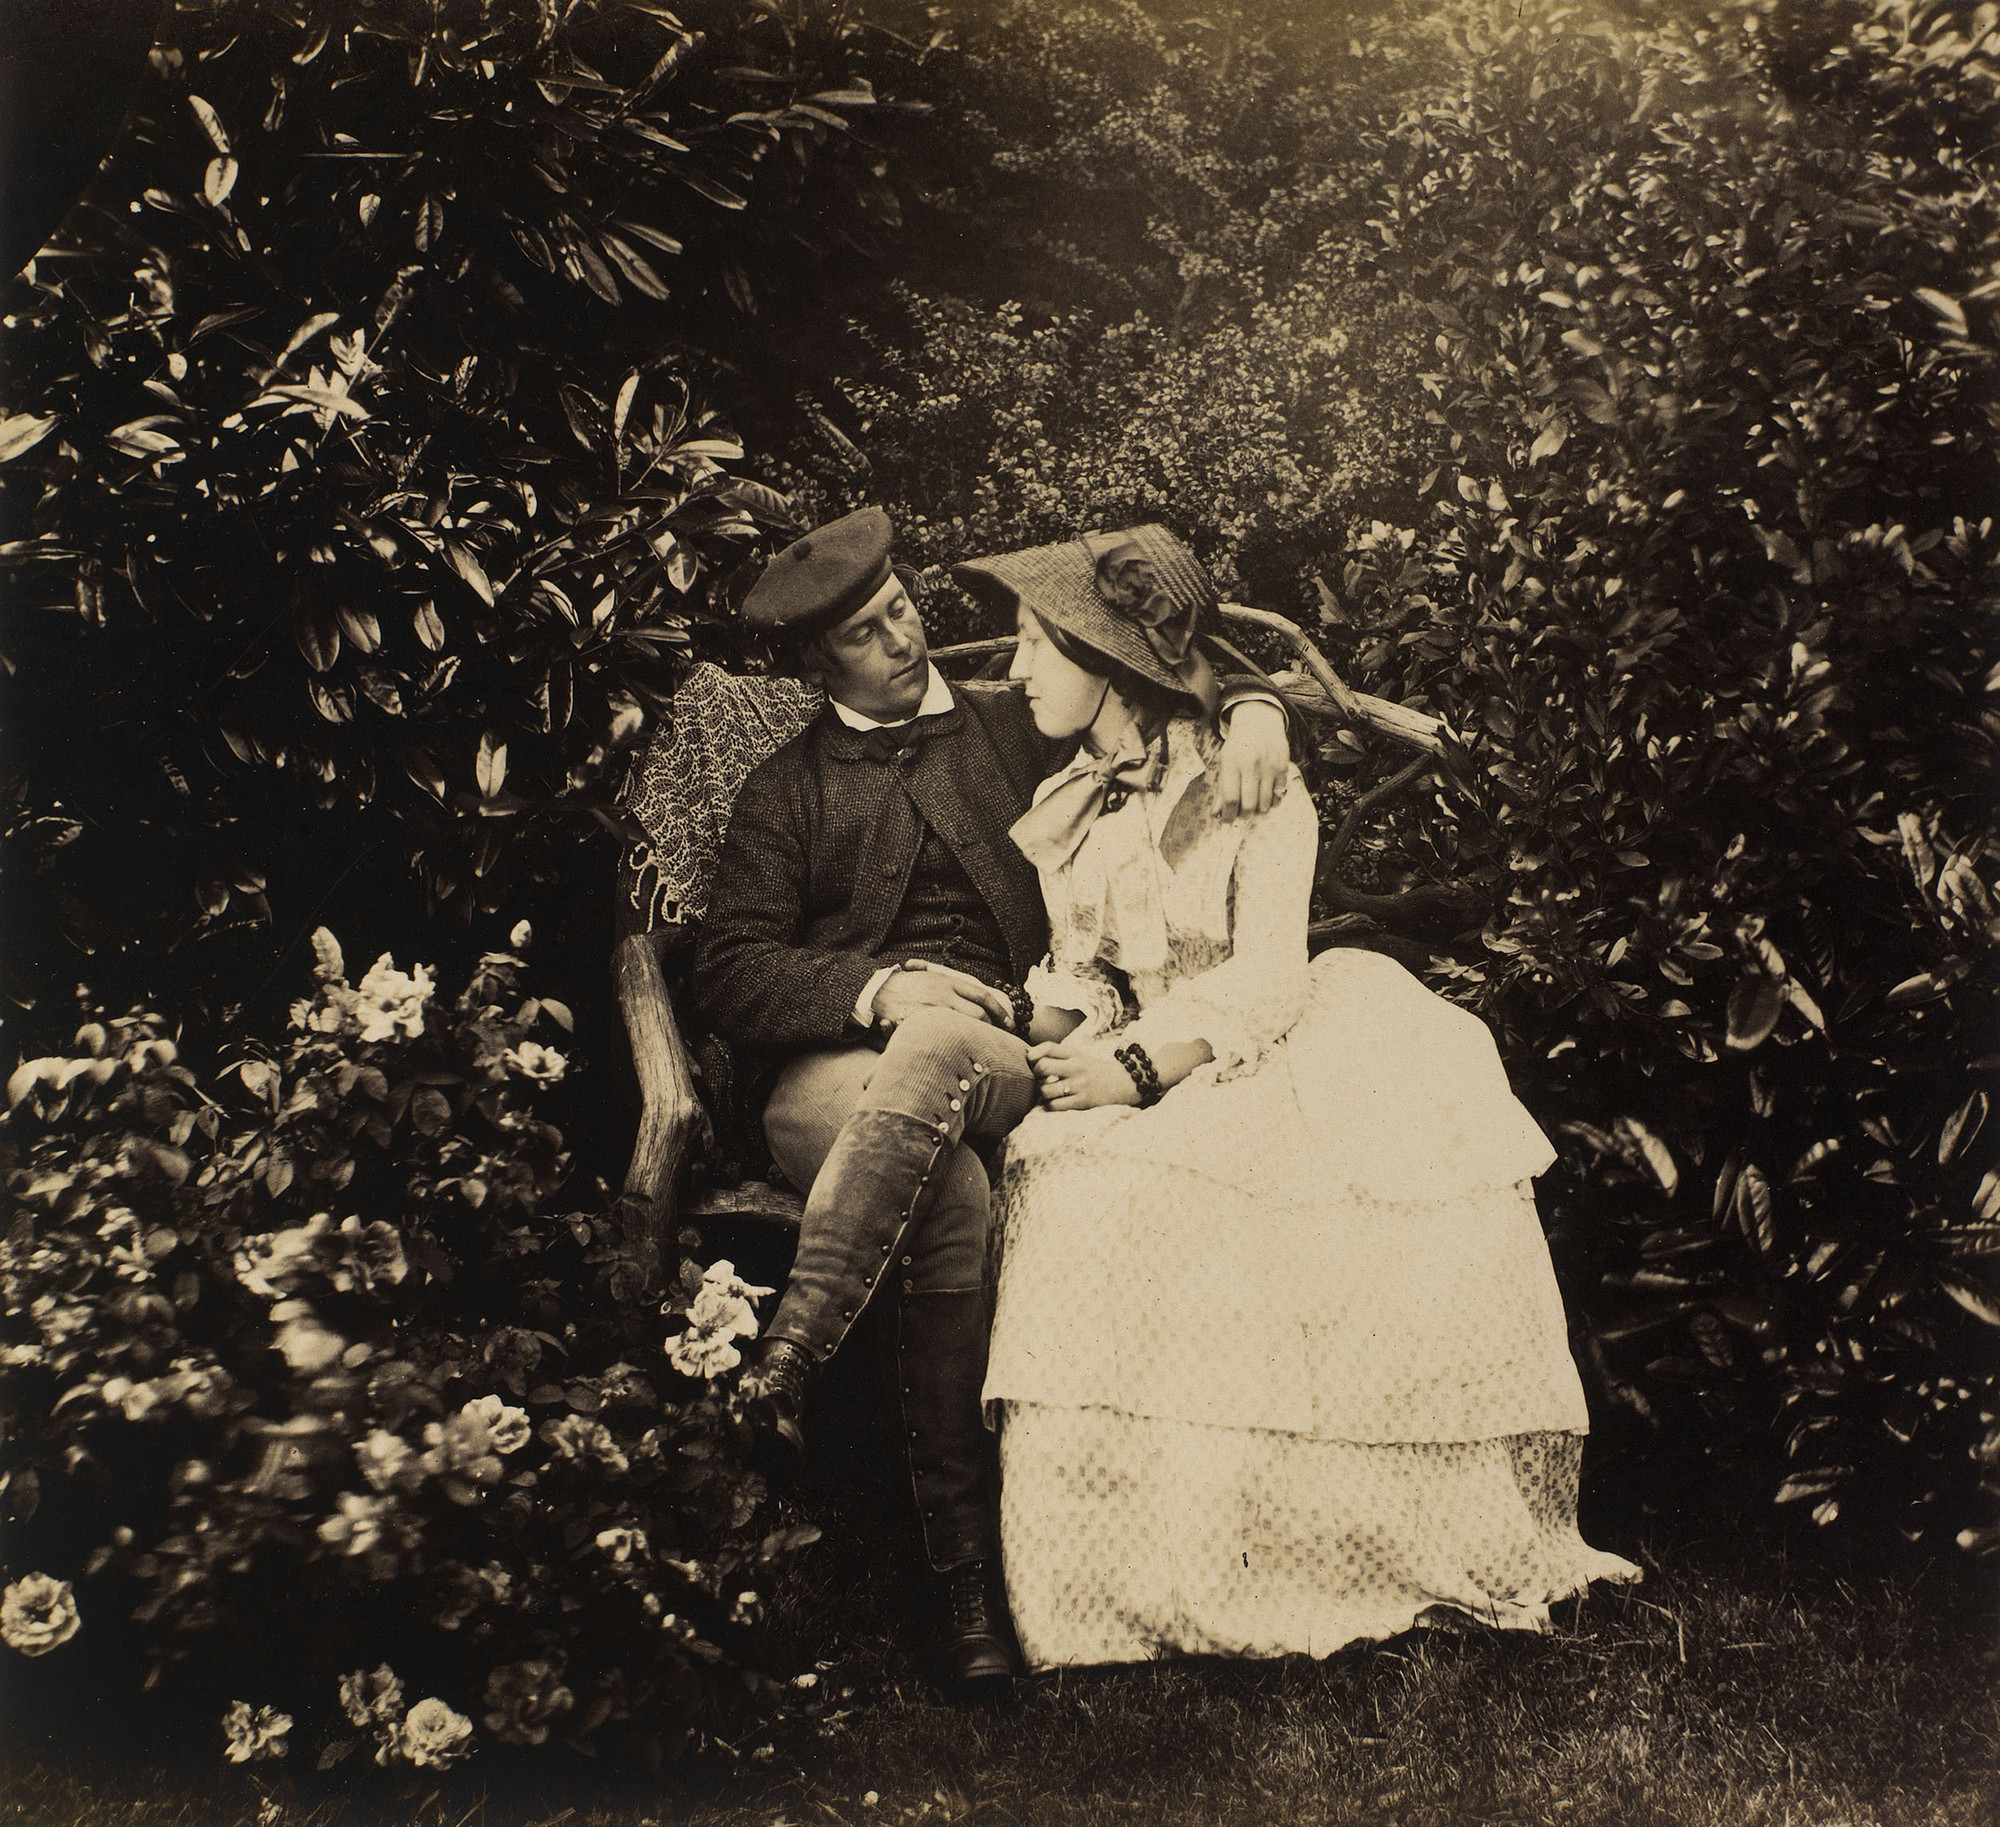 Fotó: Roger Fenton: Mézeshetek. <br />A románc Nr. 4., 1854, albumin, 18.1 x 21.4 cm © Royal Collection Trust © Acquired by Prince Albert